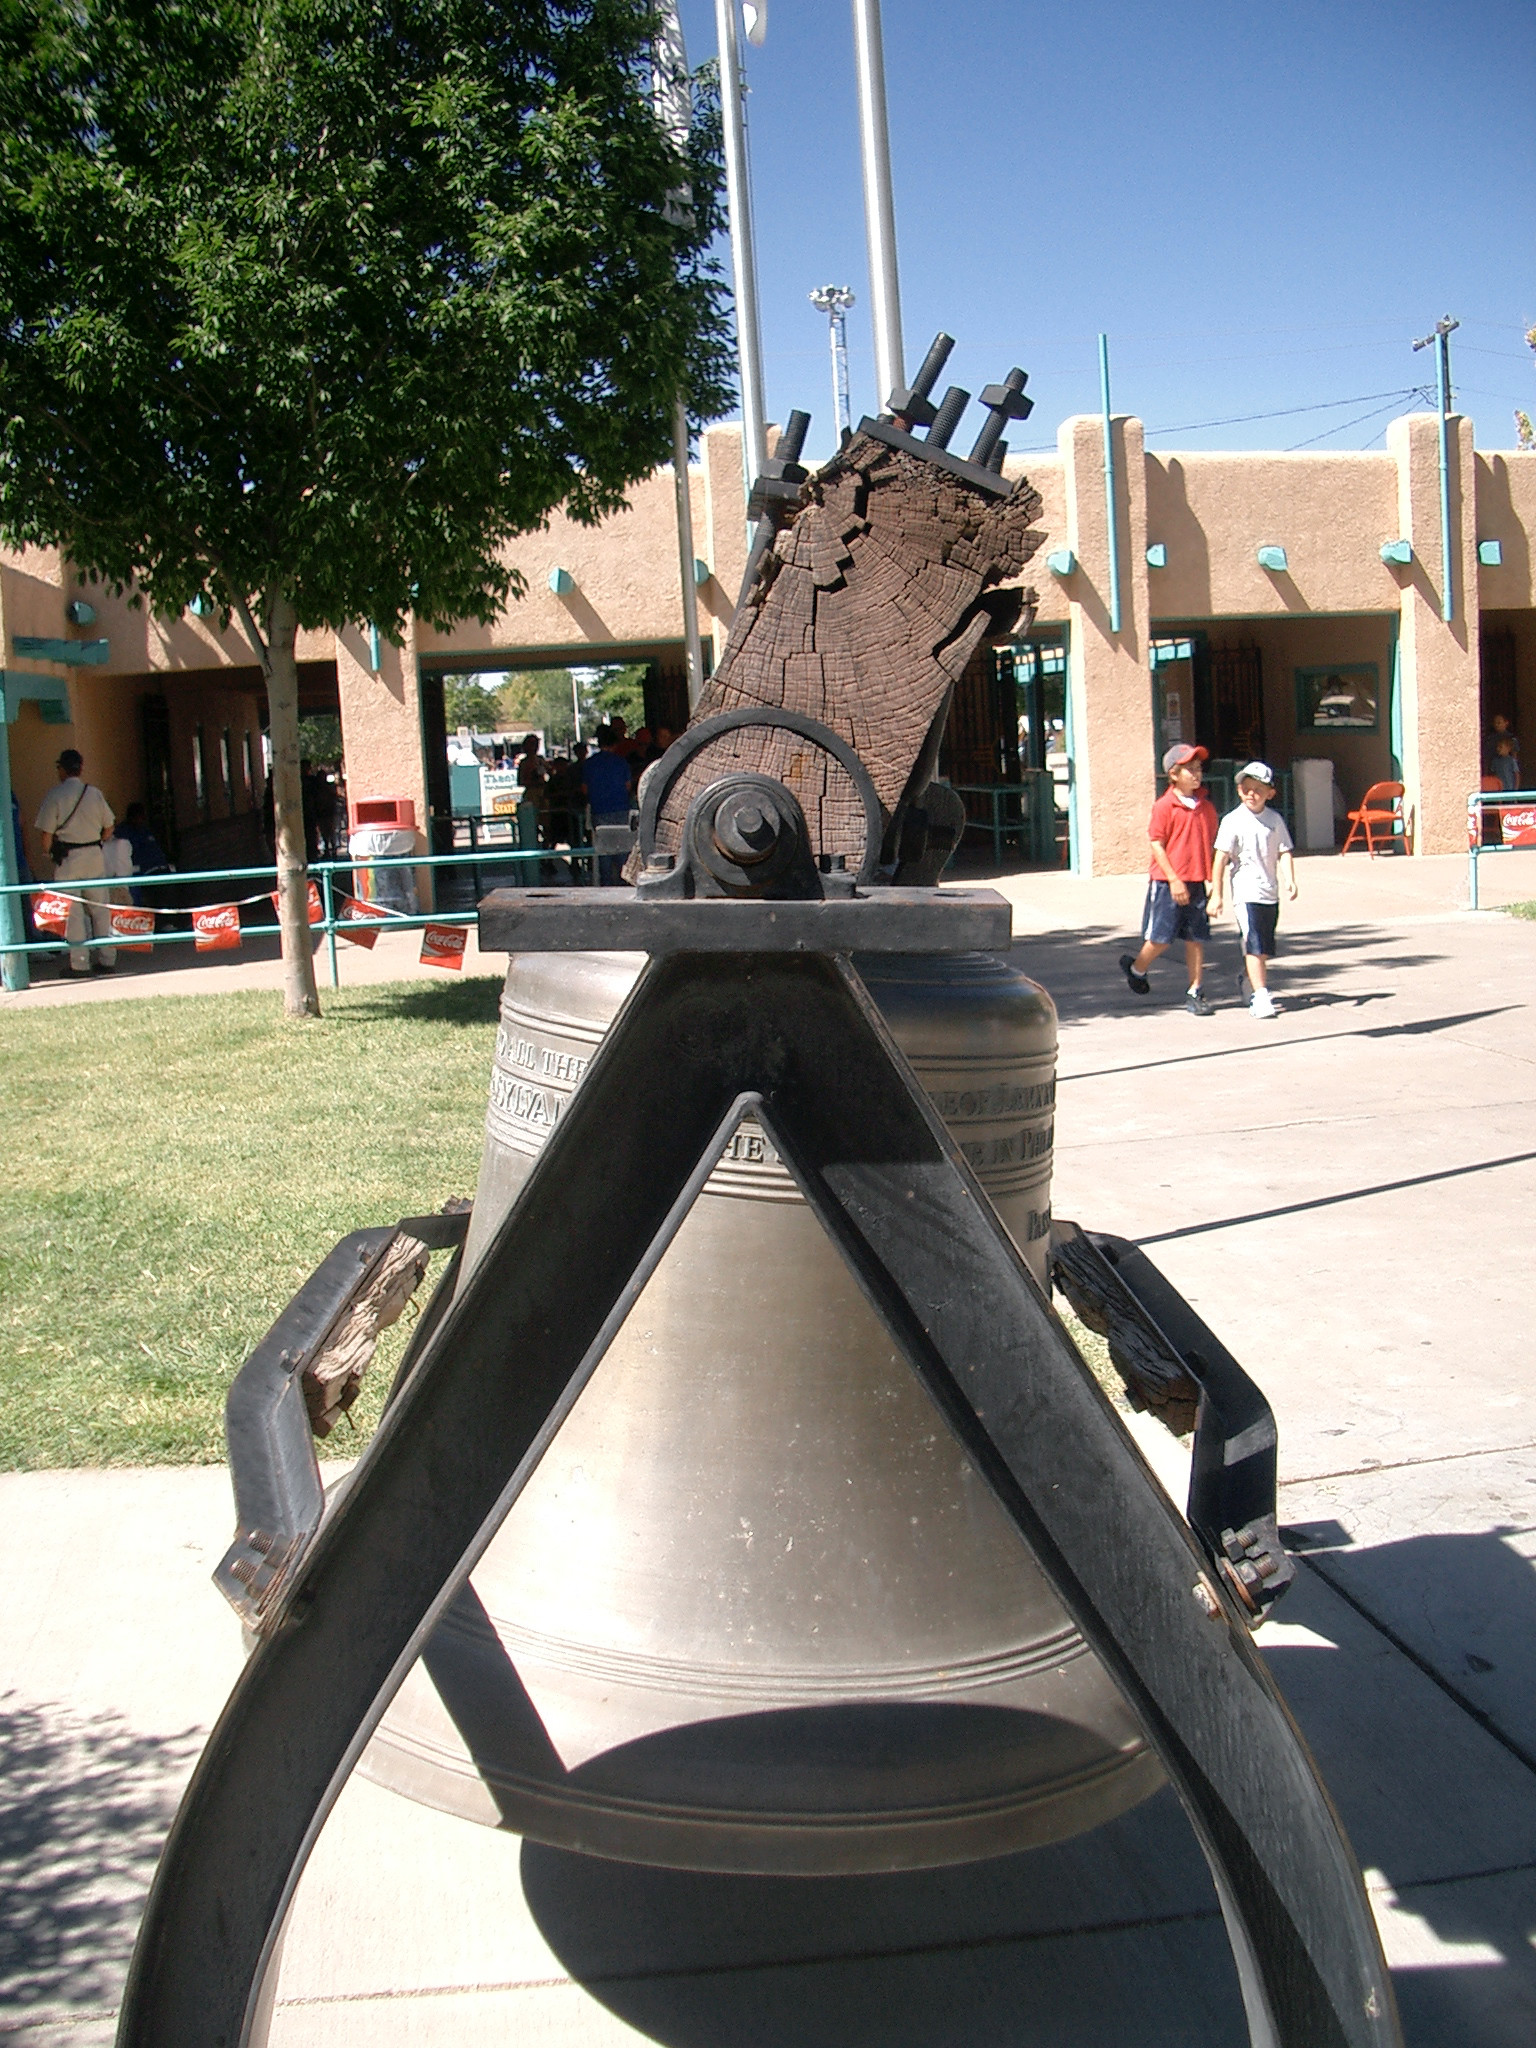 New Mexico Liberty Bell replica